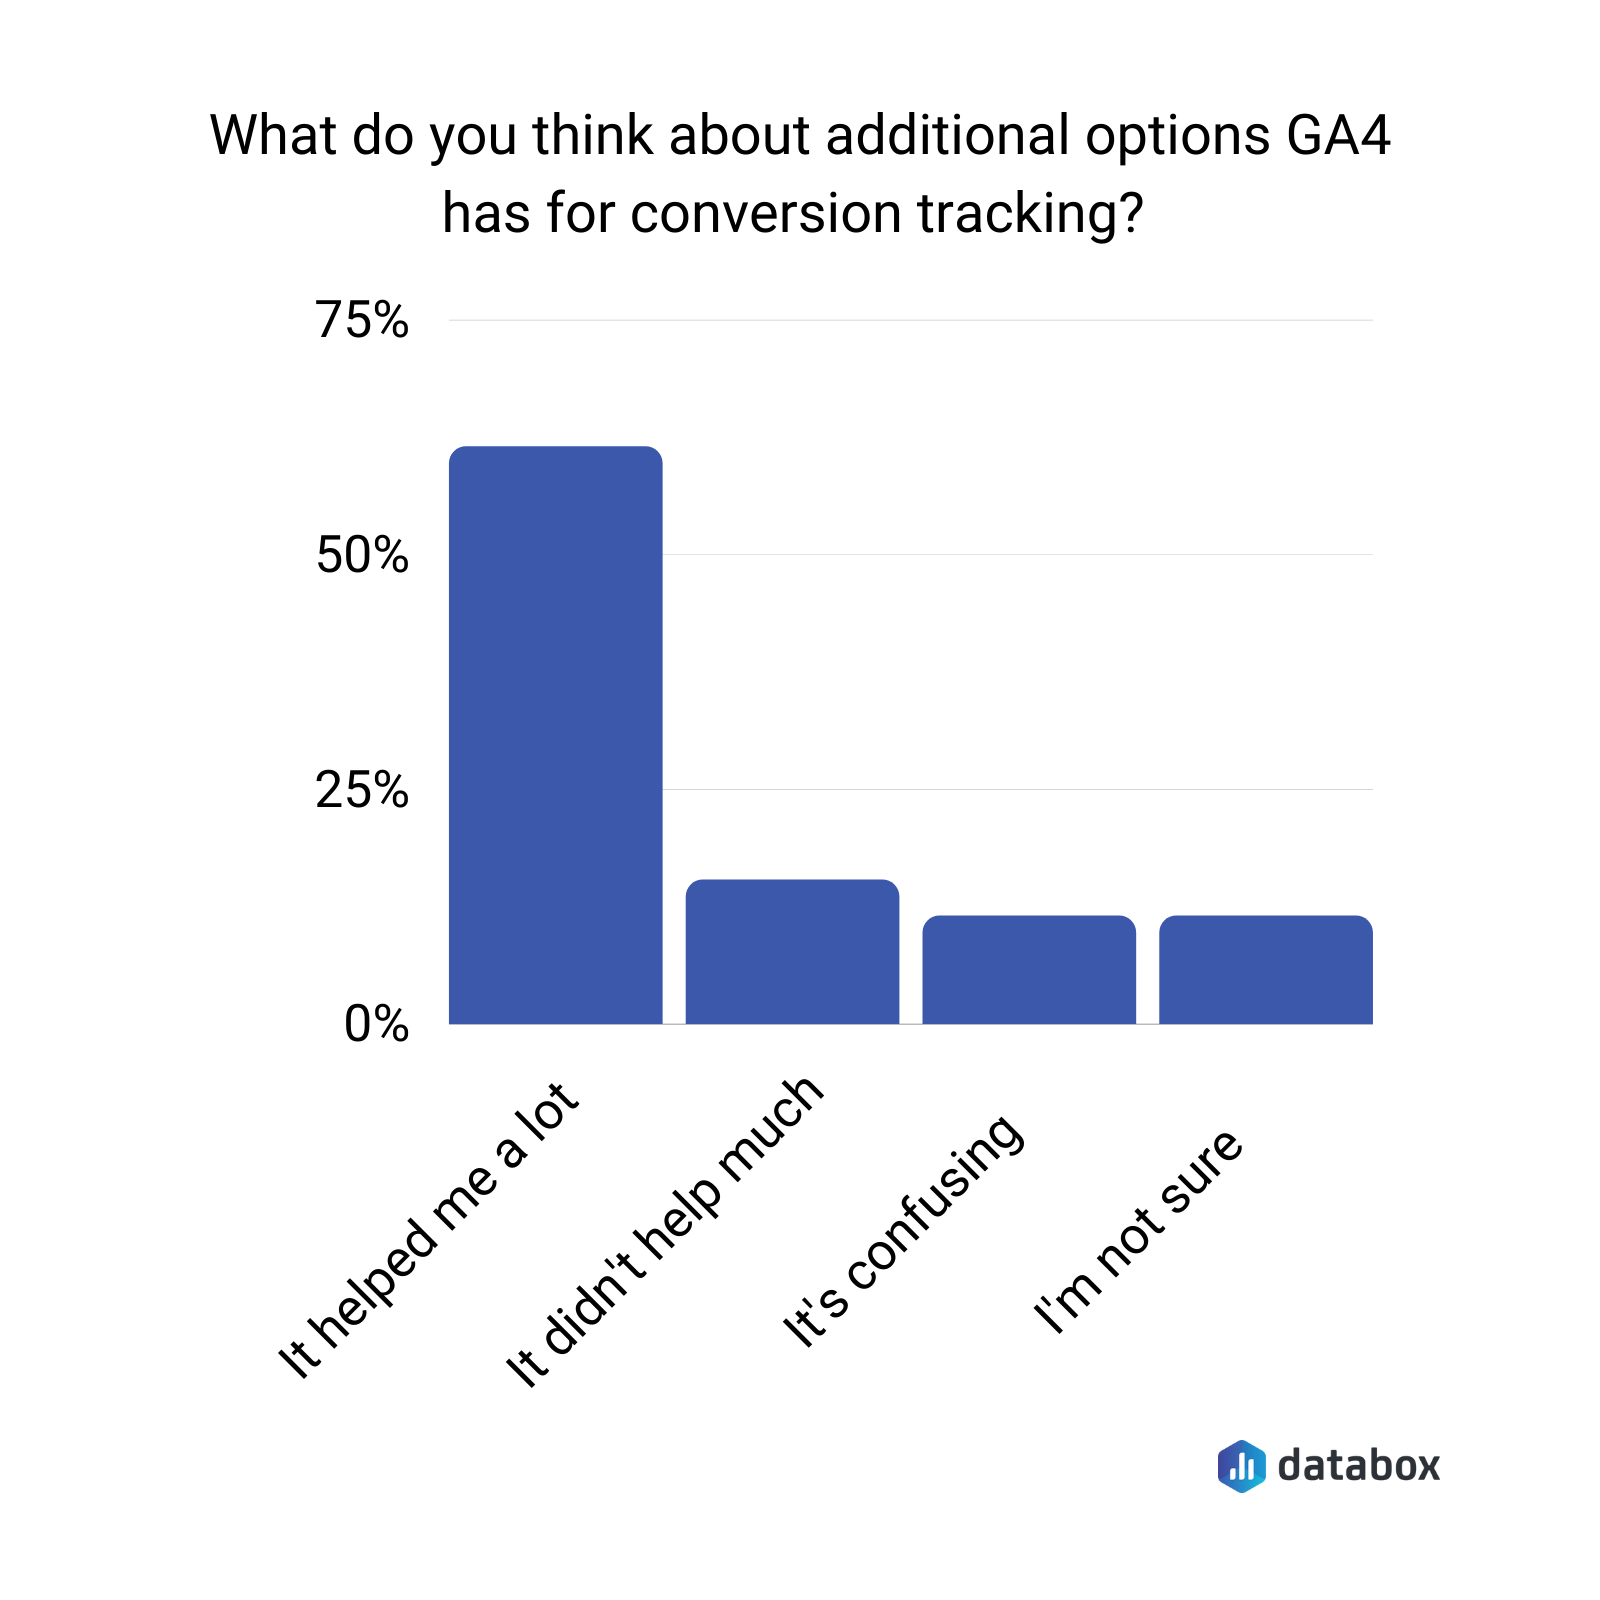 what do you think about additional options GA4 has for conversion tracking